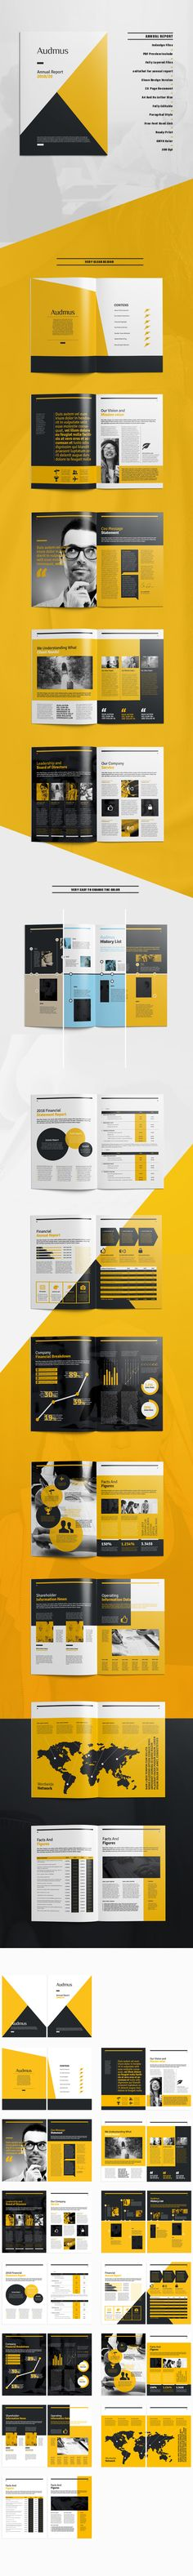 Annual Report, a4, agency proposal, brand, brief, brochure design, business, business proposal, clean, corporate, creative, design, egotype, identity, indesign, indesign templates, informational, light, minimal, modern, moscovita, professional, project pr…